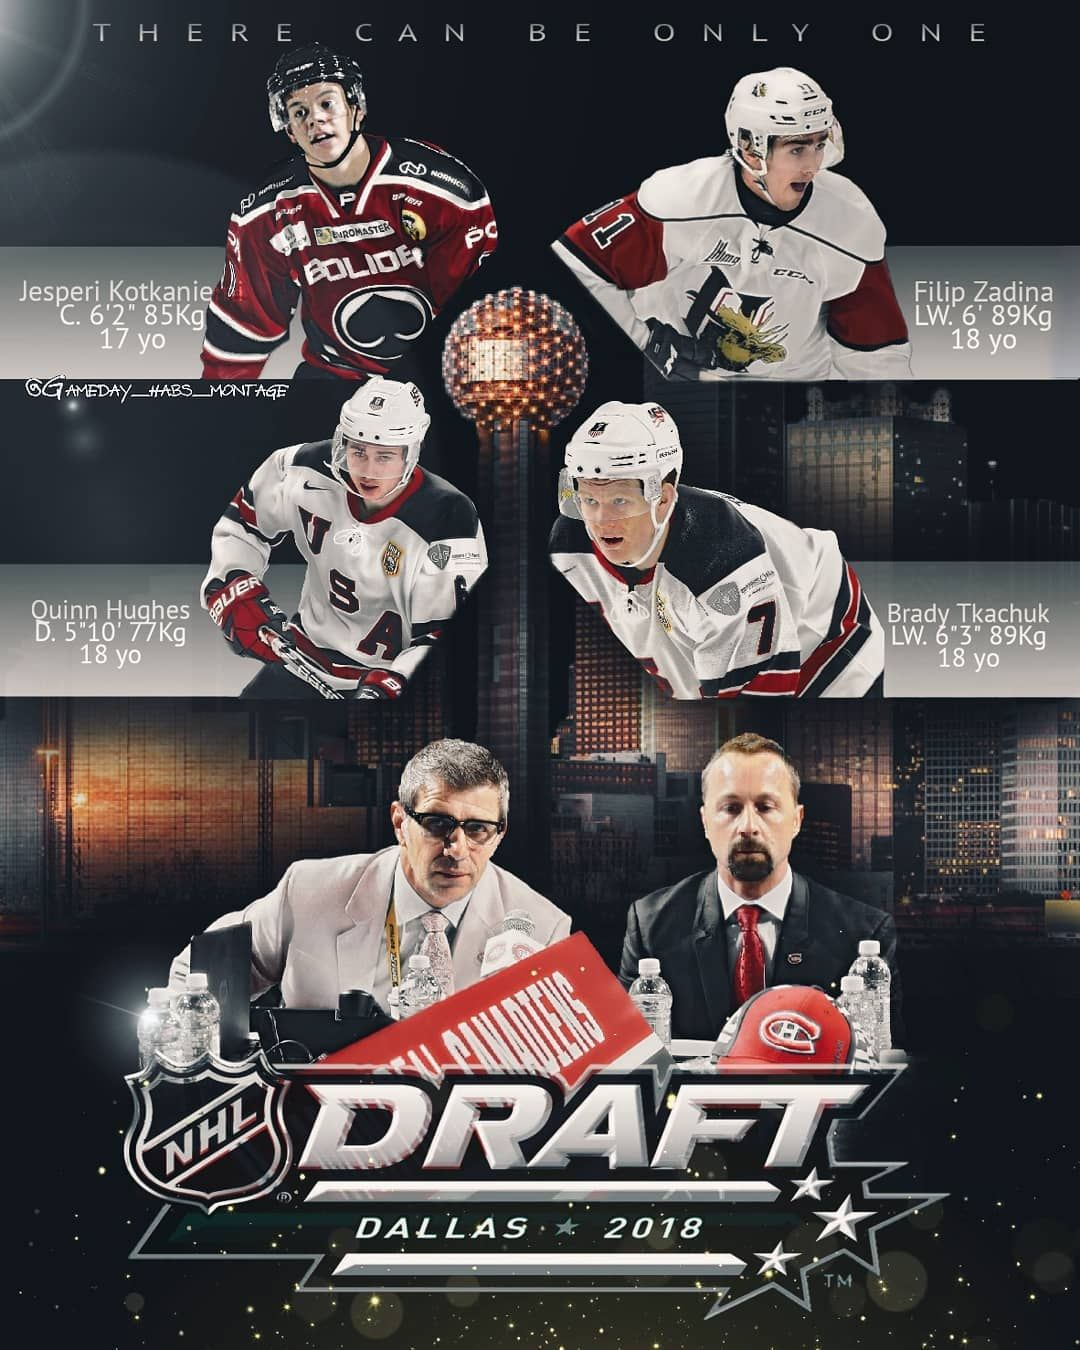 NHL DRAFT 2018 The first round of the draft is Friday (7